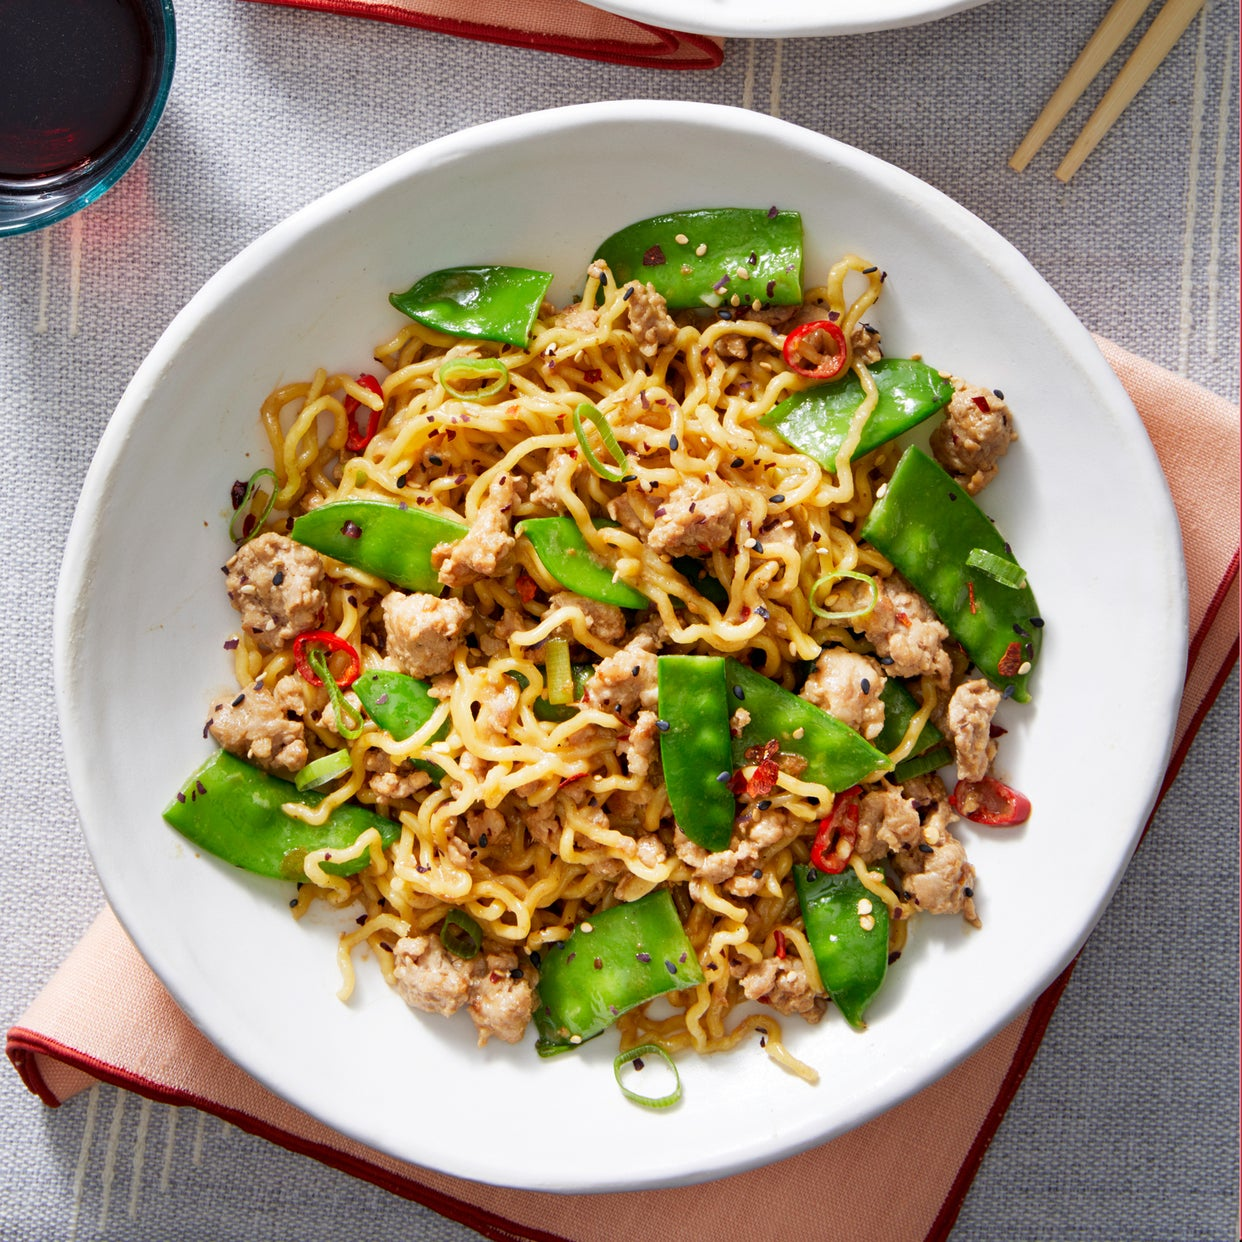 Sichuan-Style Pork Noodles with Snow Peas & Bird's Eye Chile